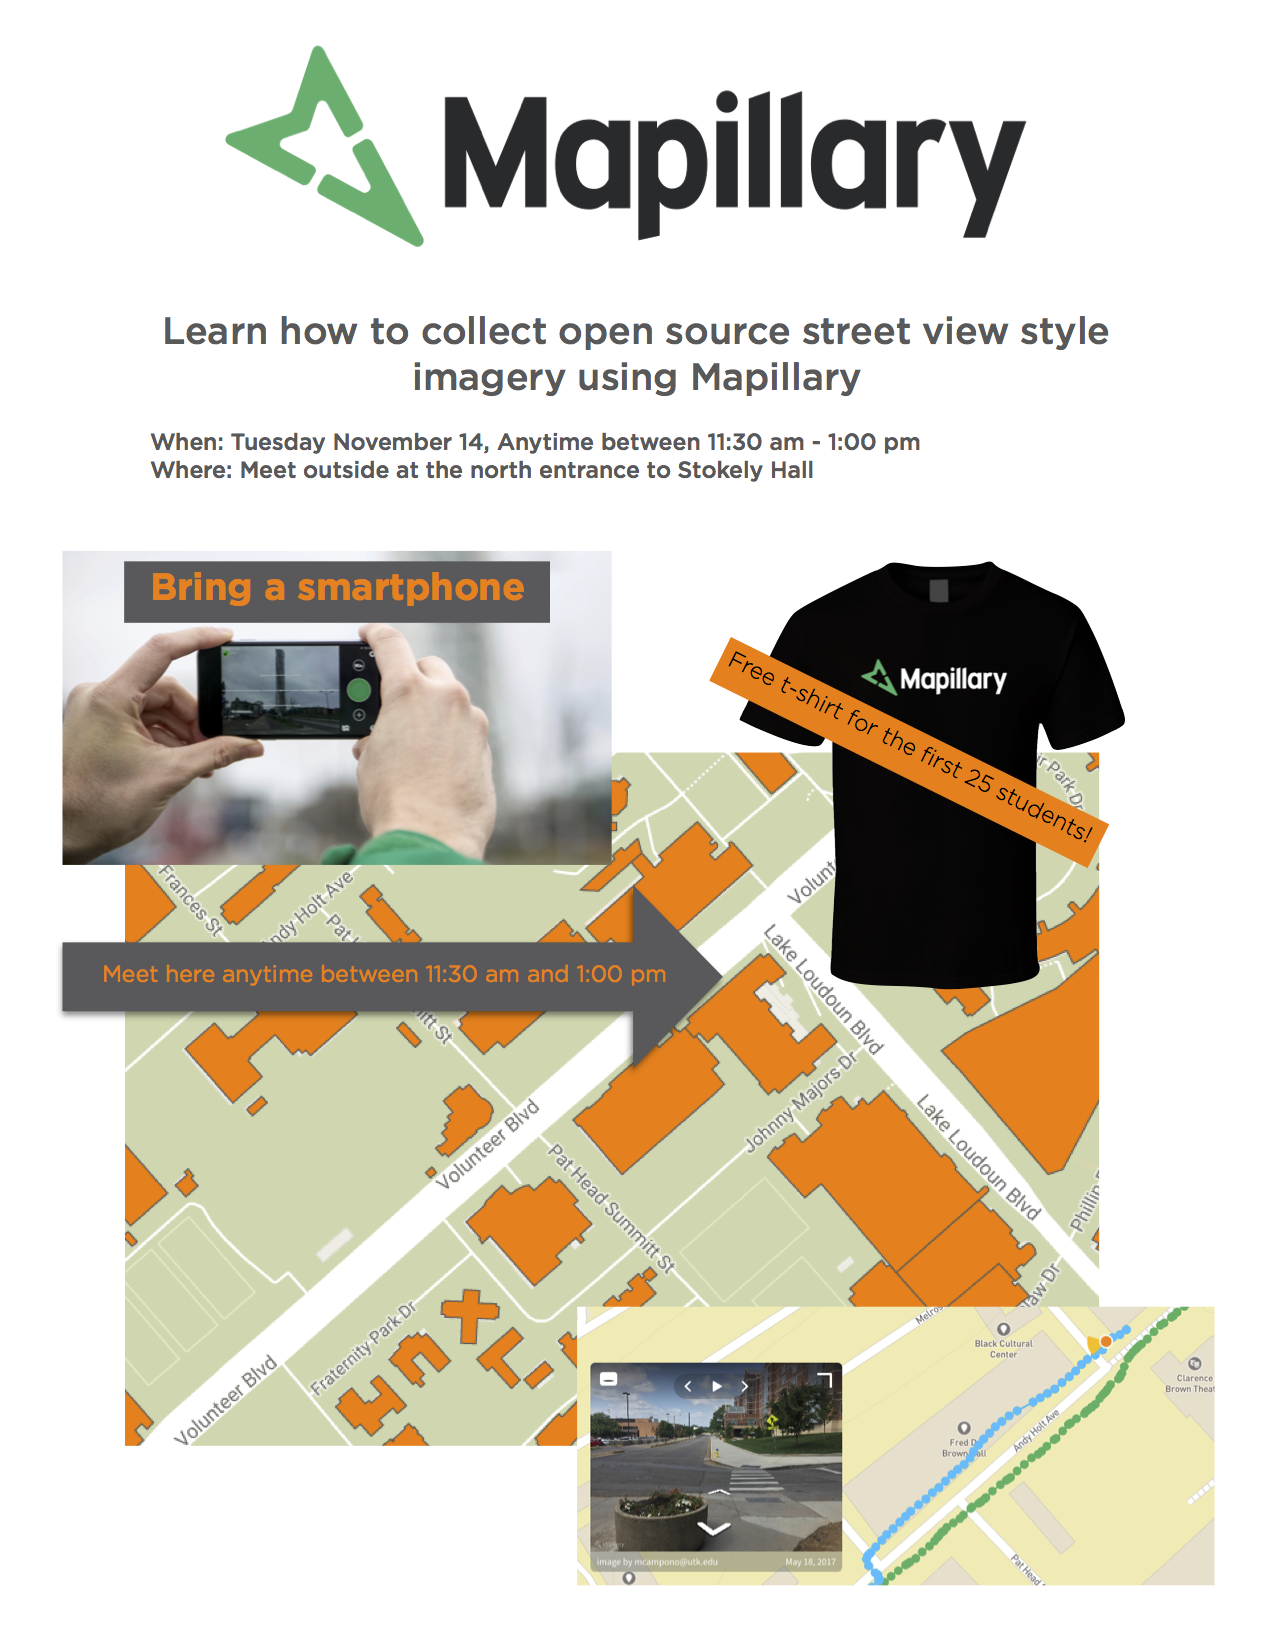 A flier for the free mapping workshop.